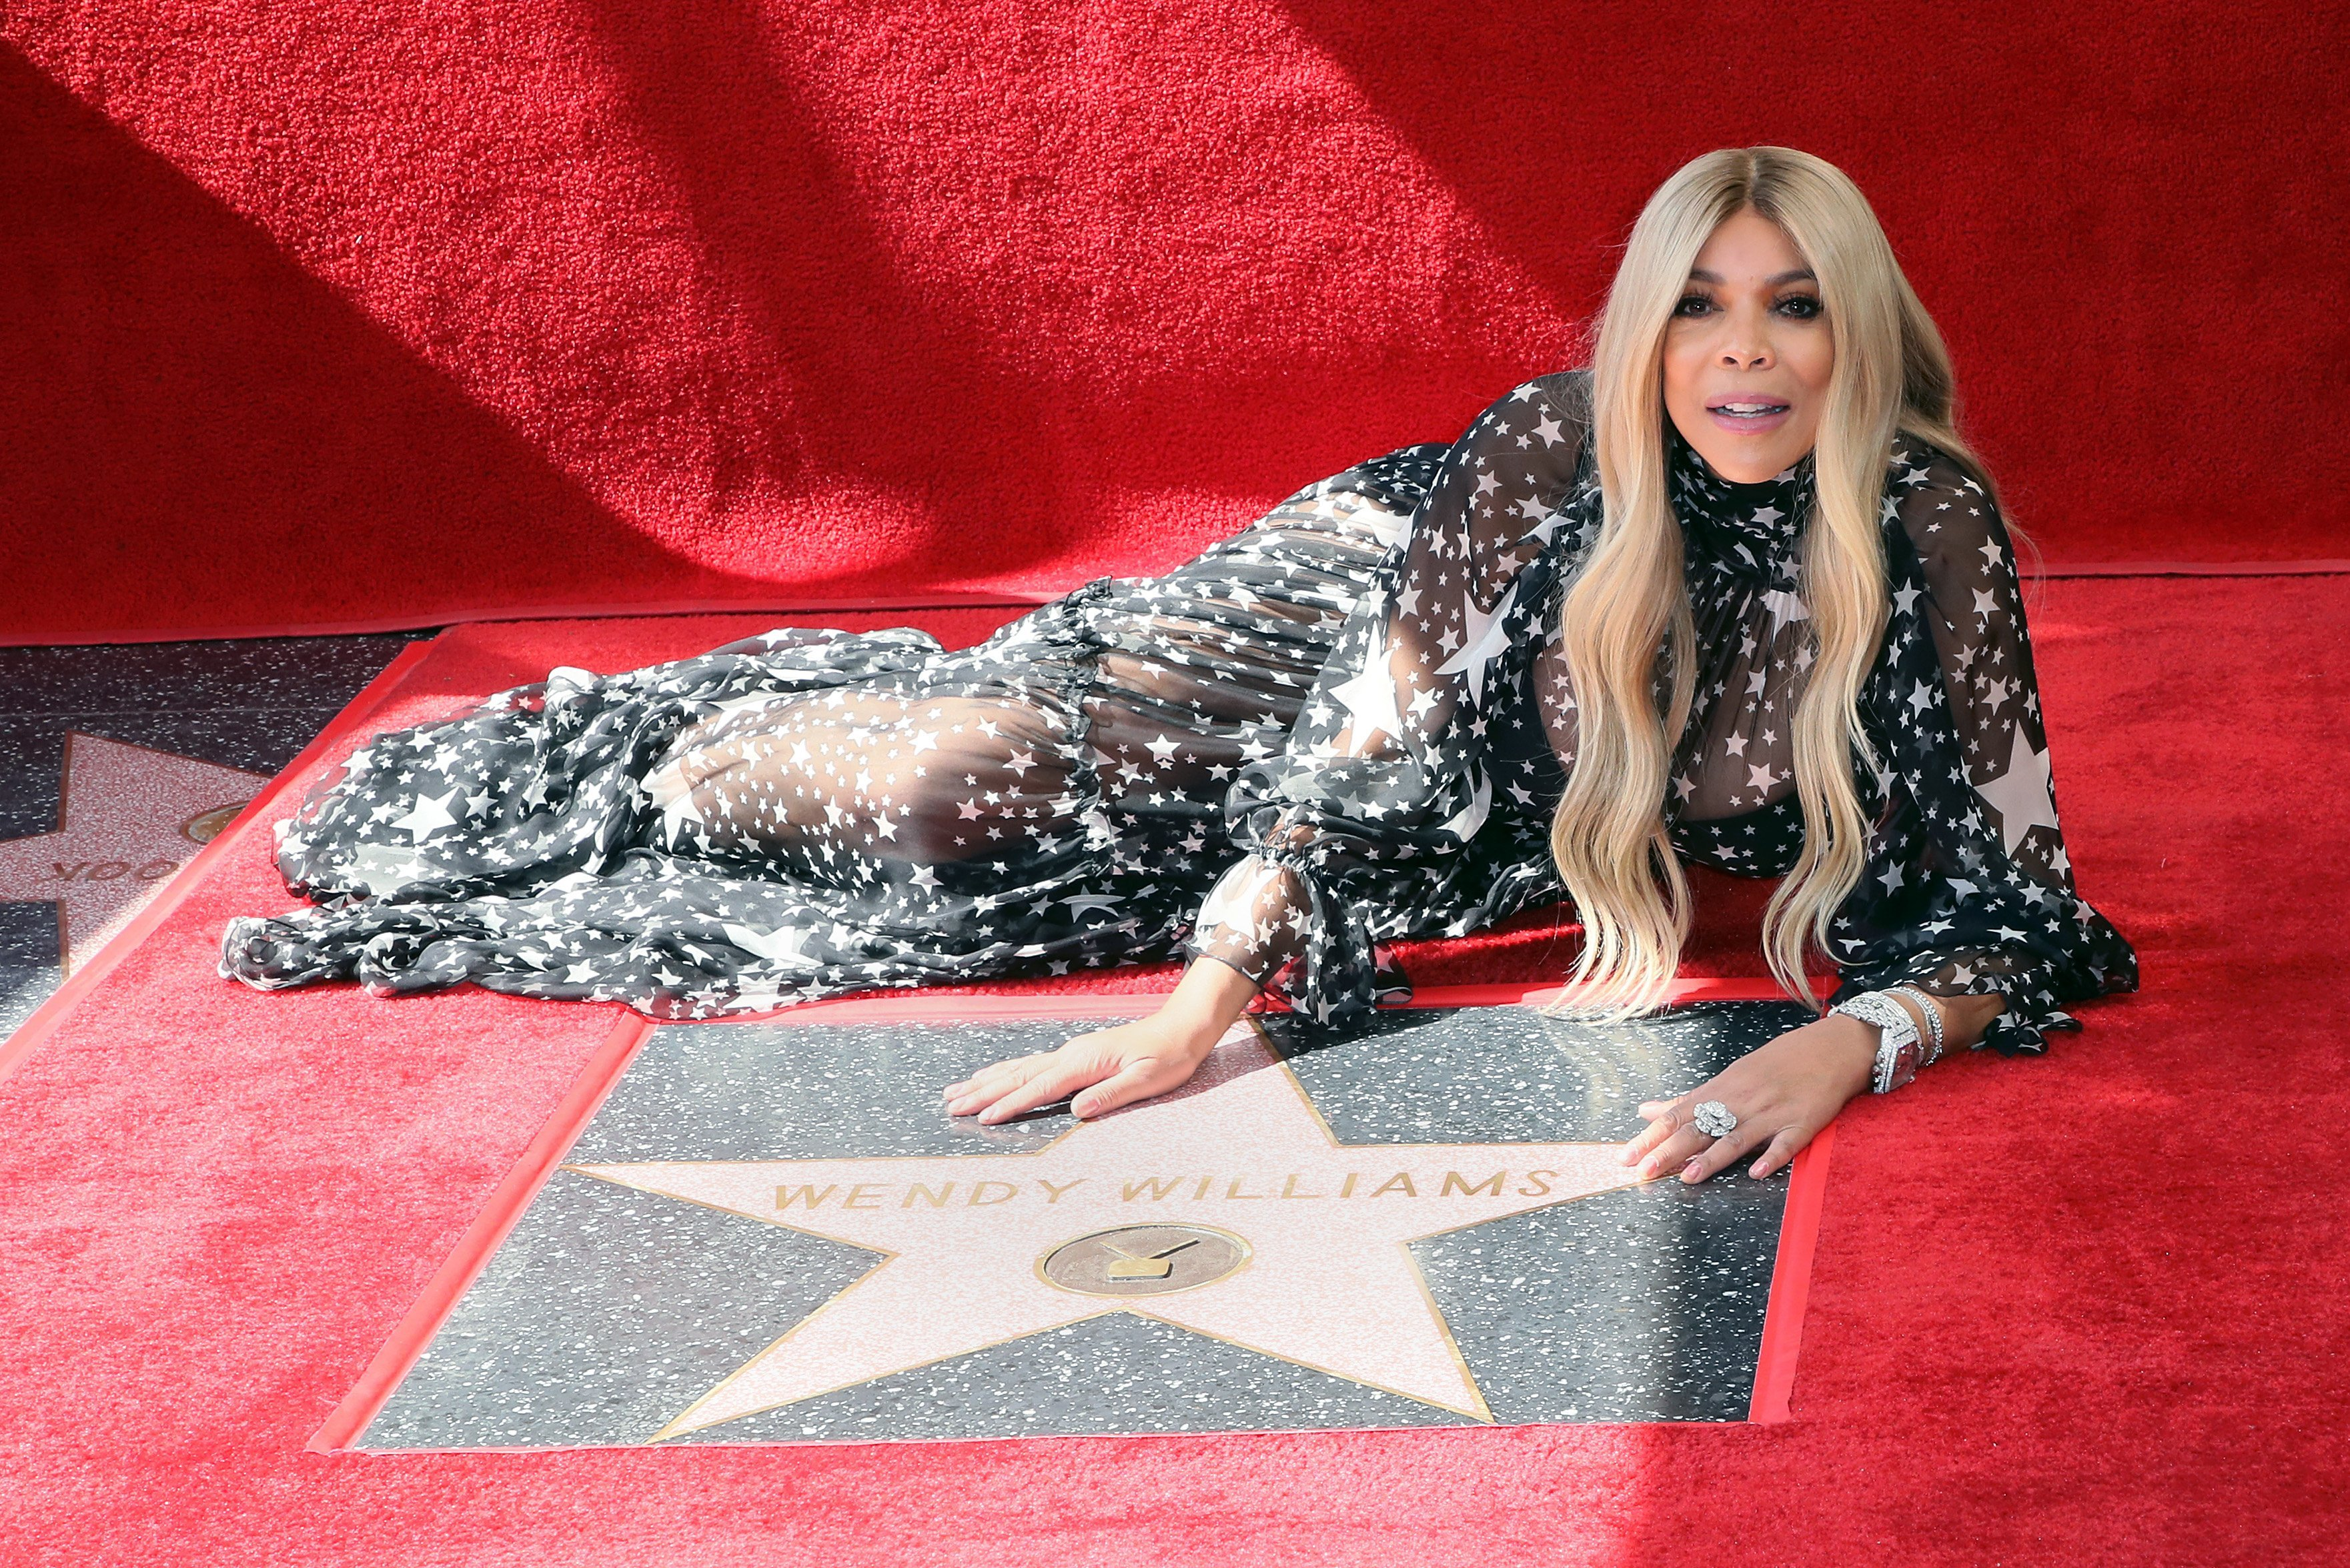 Wendy Williams is honored with a Star on the Hollywood Walk of Fame on Oct. 17, 2019 in Hollywood, California | Photo: Getty Images